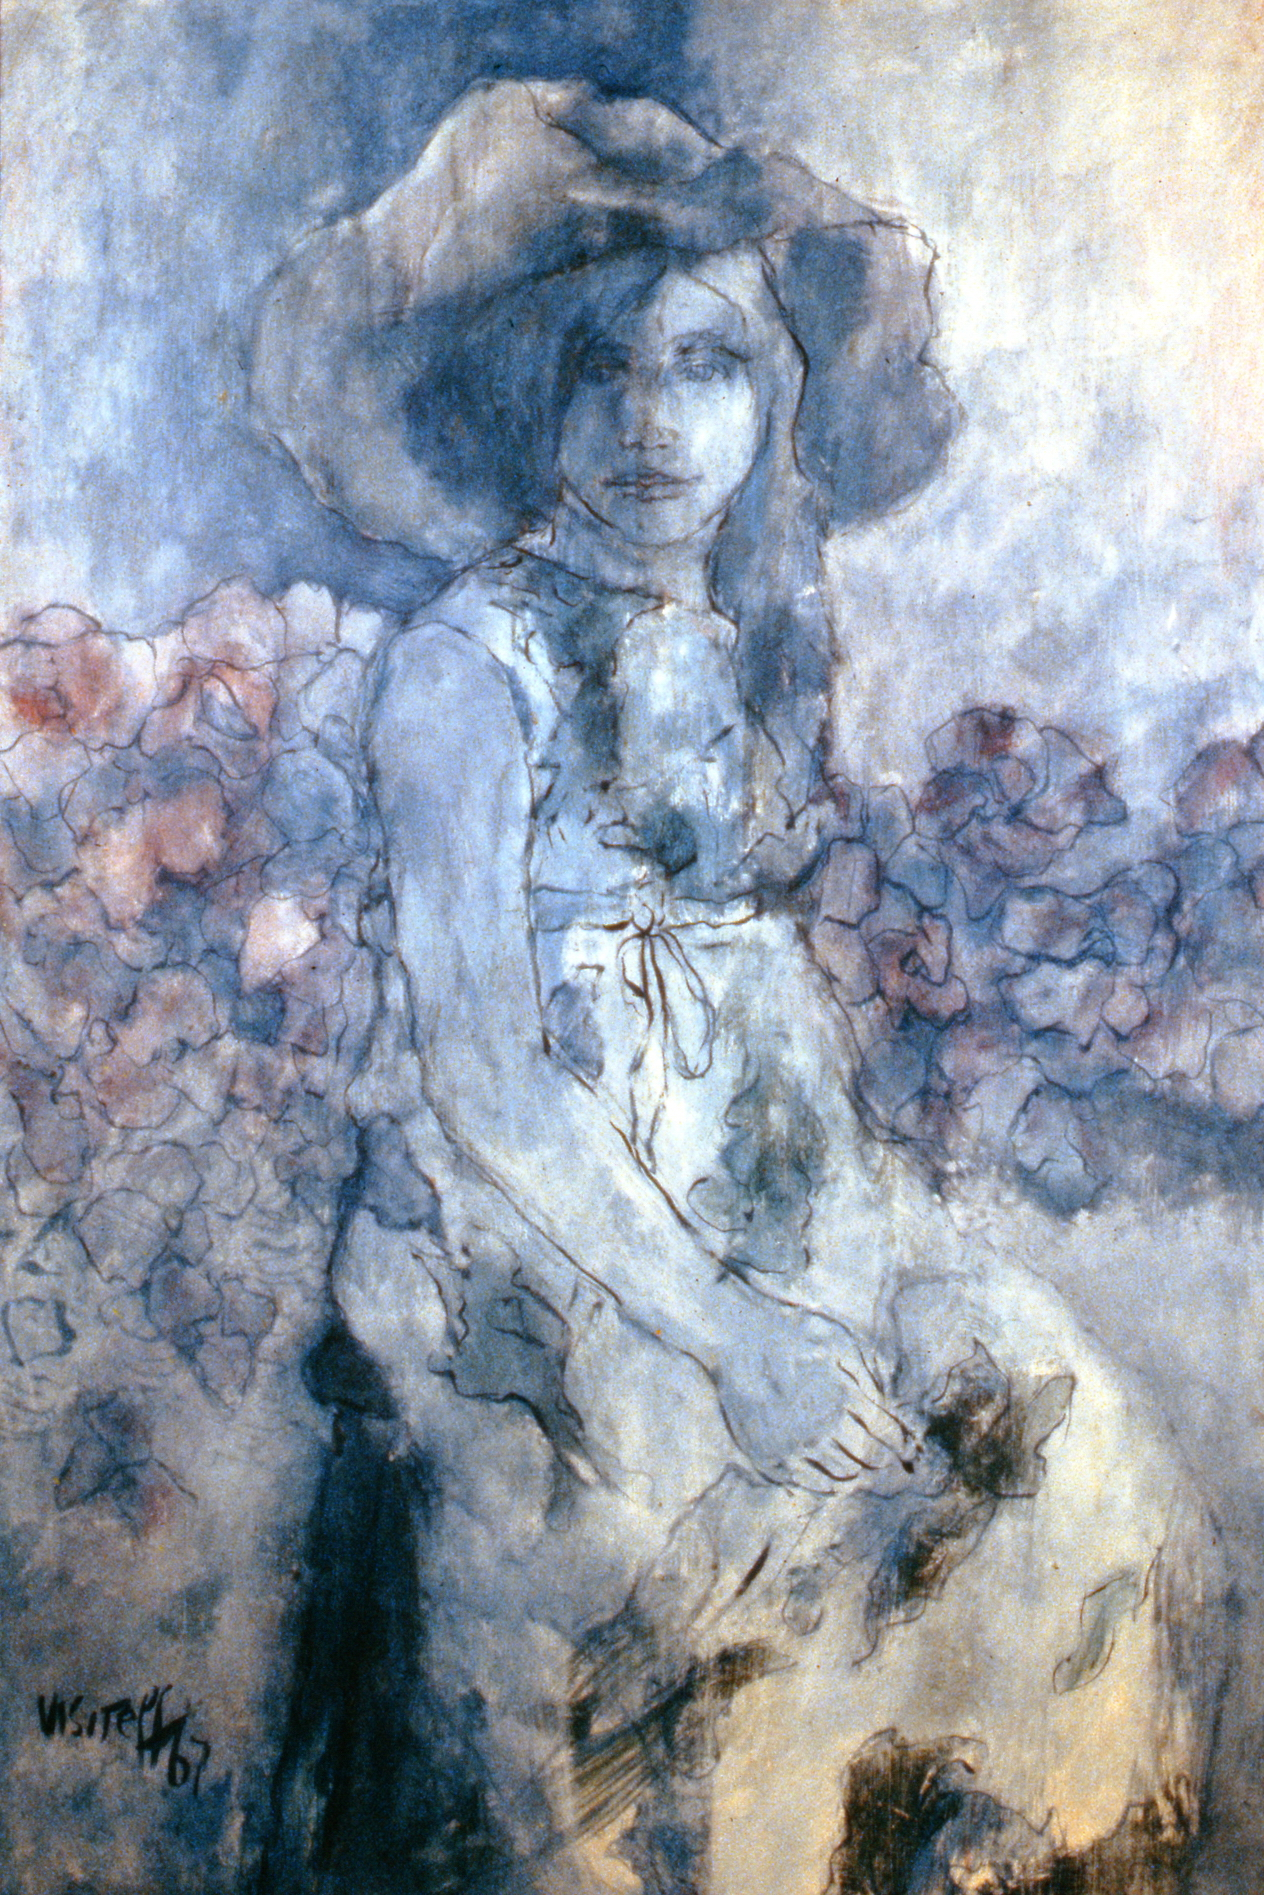 Blue Girl , 1967, Gail Visiteff,acrylic painting, 80 cm x 118 cm, 1967.02.01, gift of anonymous Art Club member